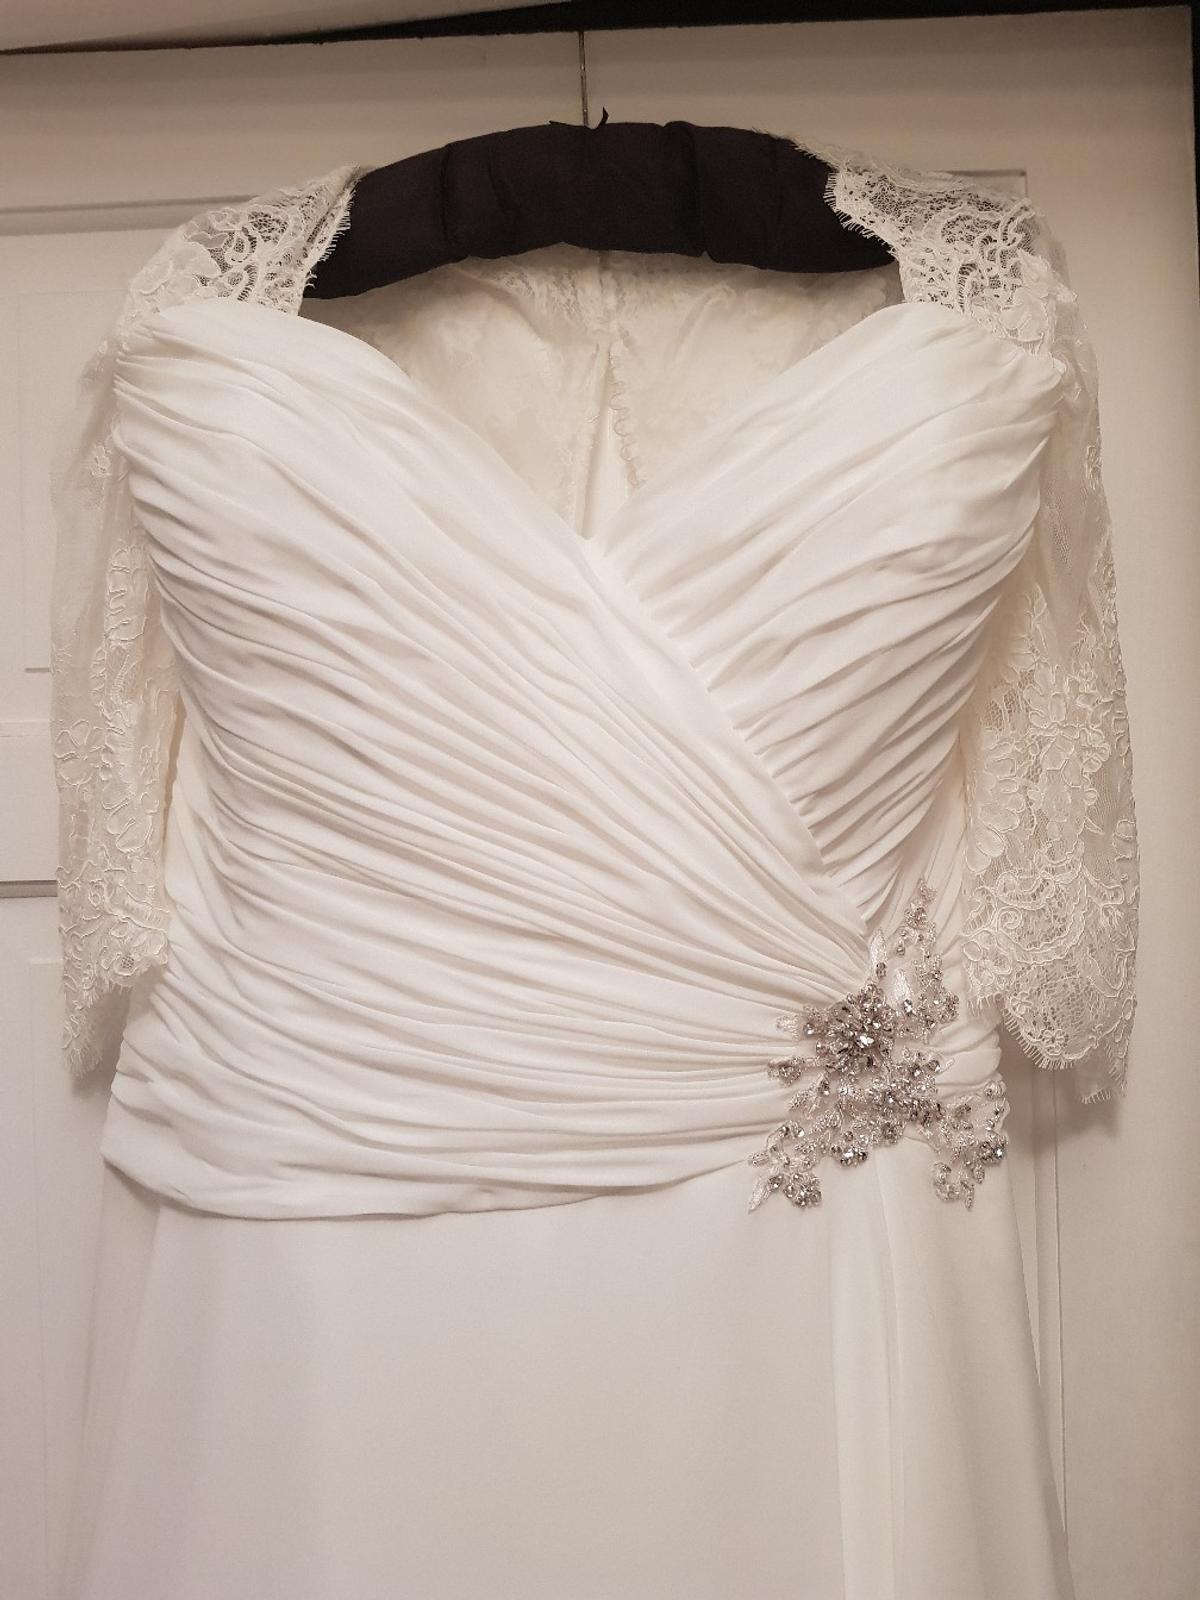 White Rose Plus Size Wedding Dress 22 24 In Bb12 Burnley For